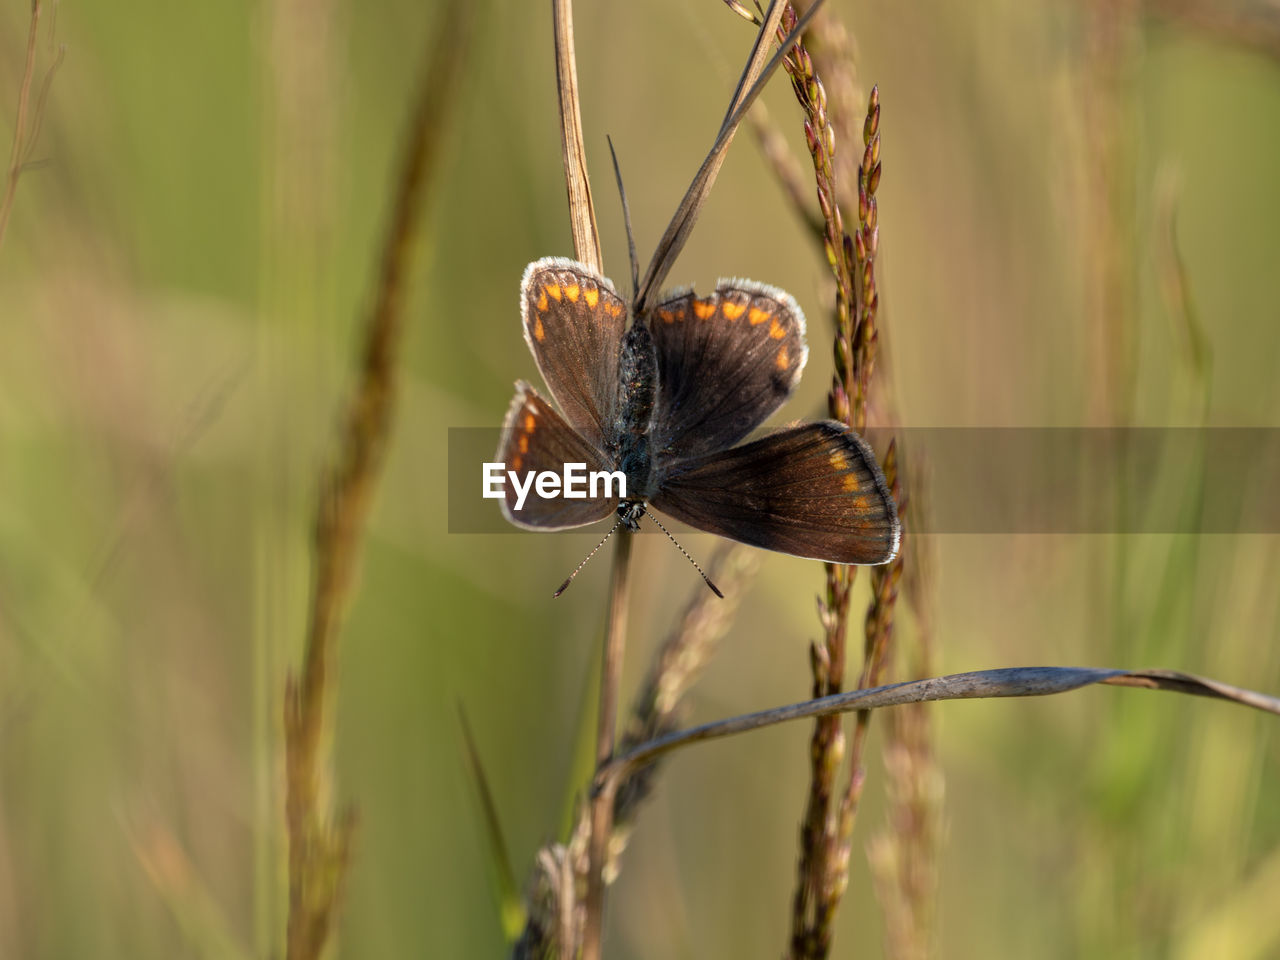 animal wildlife, animals in the wild, invertebrate, animal themes, plant, animal, insect, one animal, close-up, focus on foreground, nature, beauty in nature, animal wing, no people, day, growth, zoology, outdoors, plant stem, selective focus, butterfly - insect, butterfly